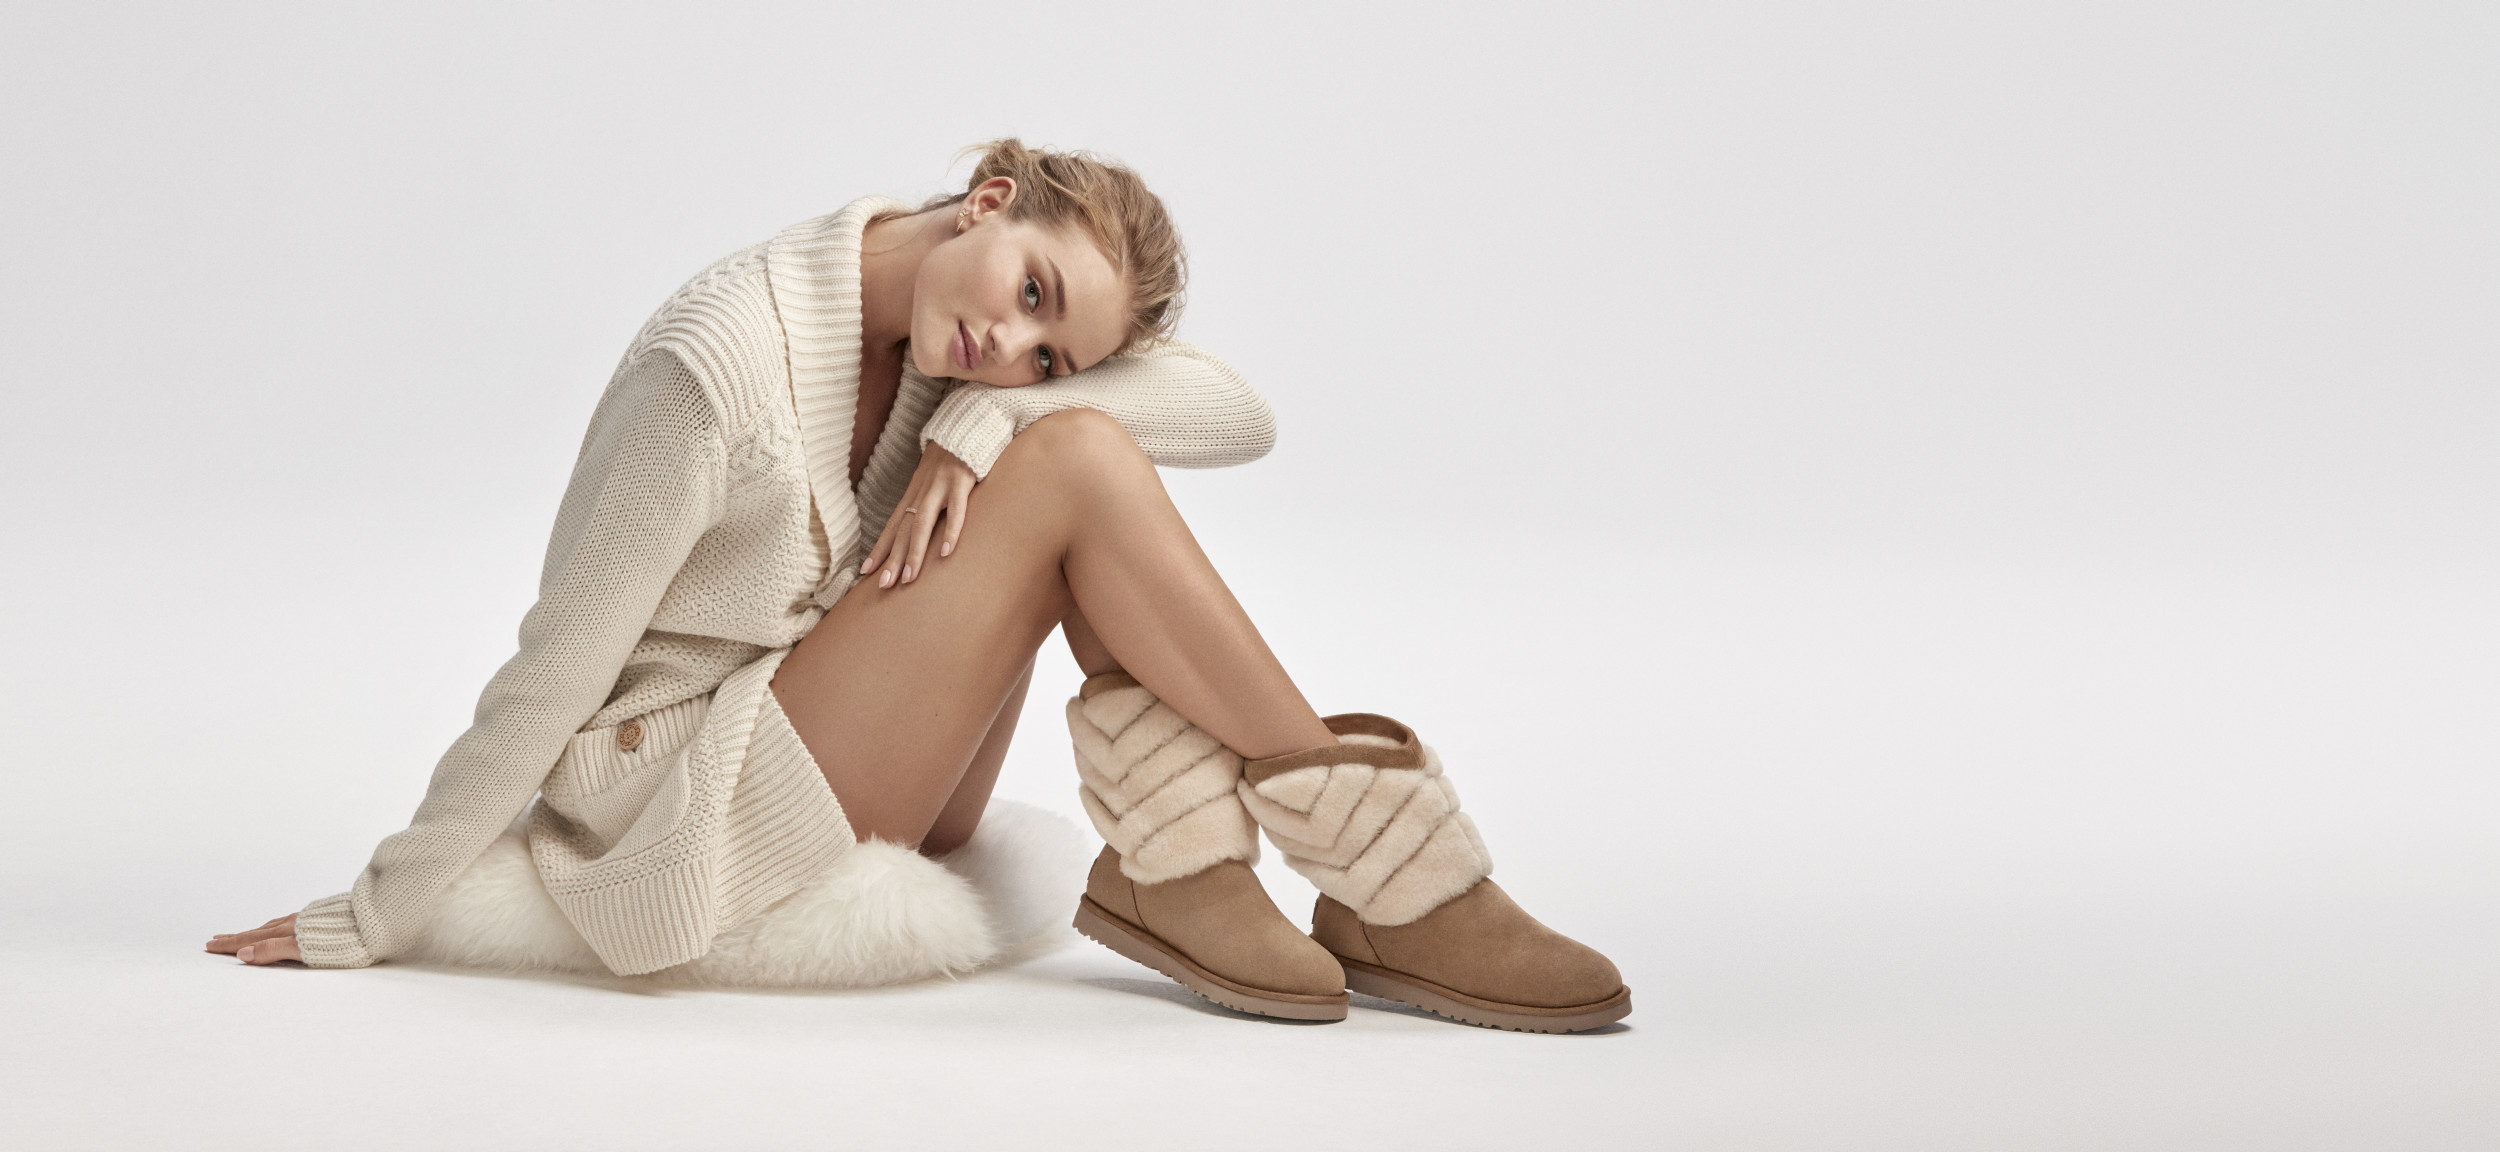 ugg-womens-winter-holiday-2016-campaign-rosie-huntington-whiteley-in-tania-chestnut-boot-and-maribeth-sweater